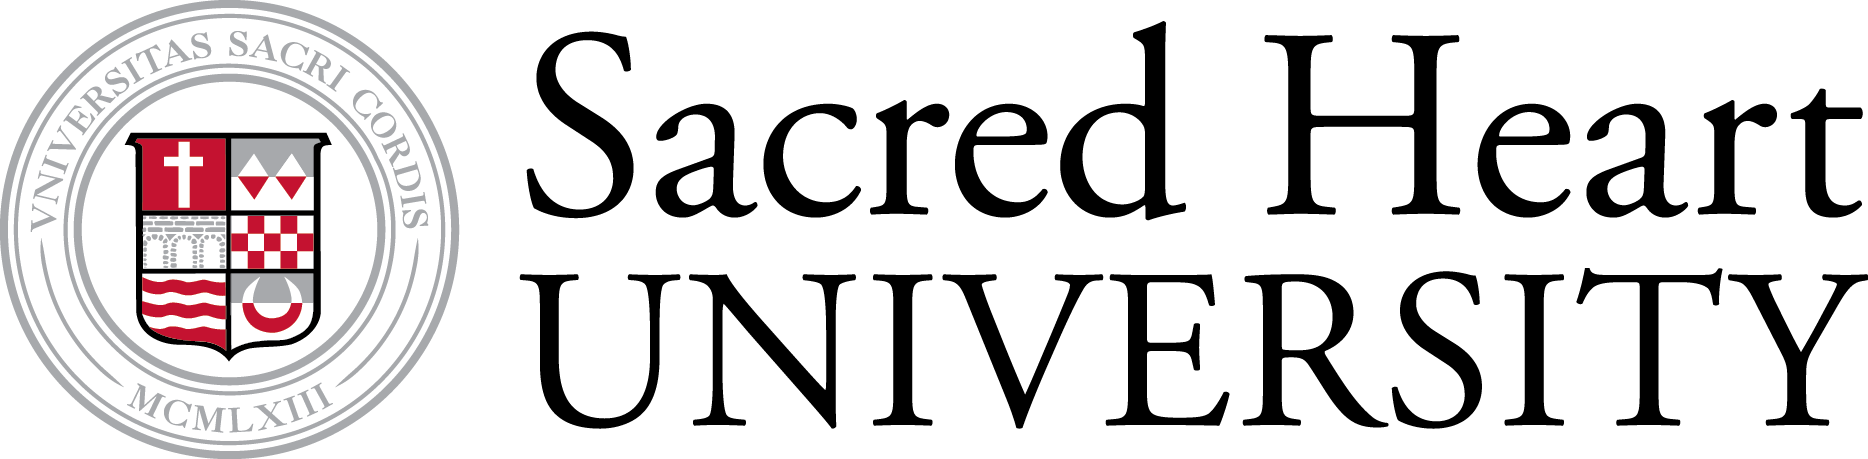 Sacred Heart University - Computer Science and Info Technology